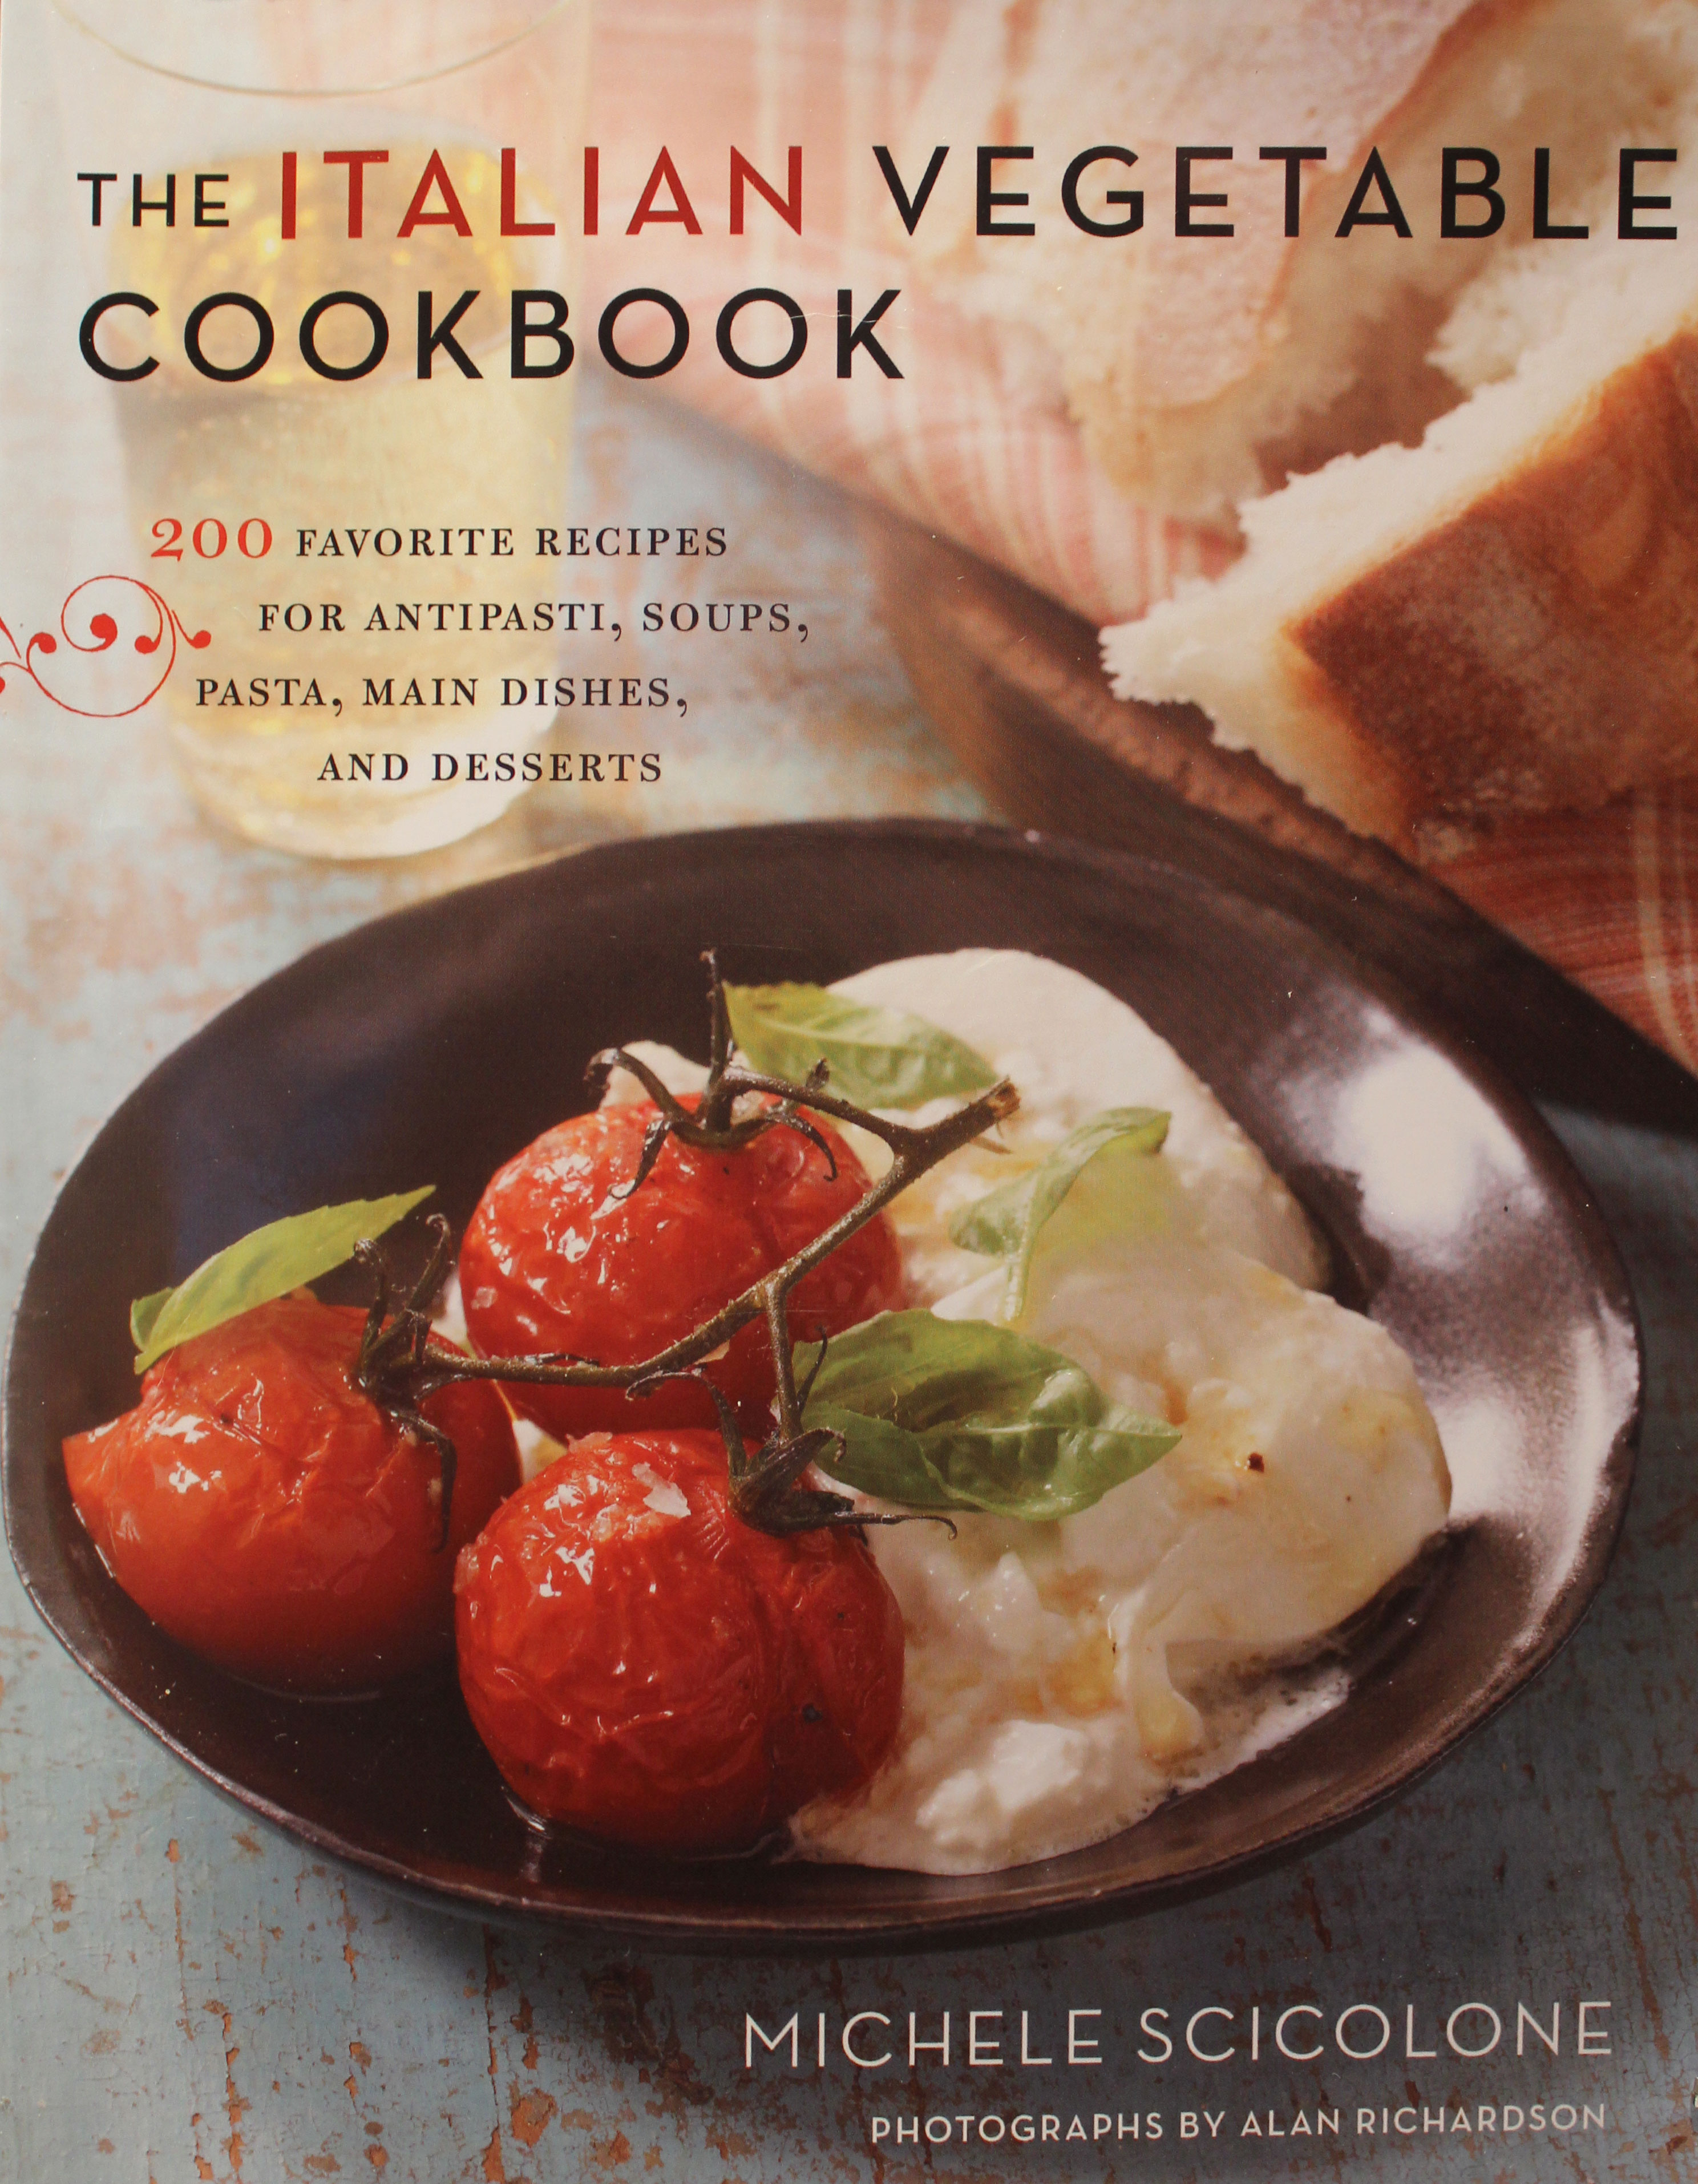 TBT Cookbook Review: The Italian Vegetable Cookbook